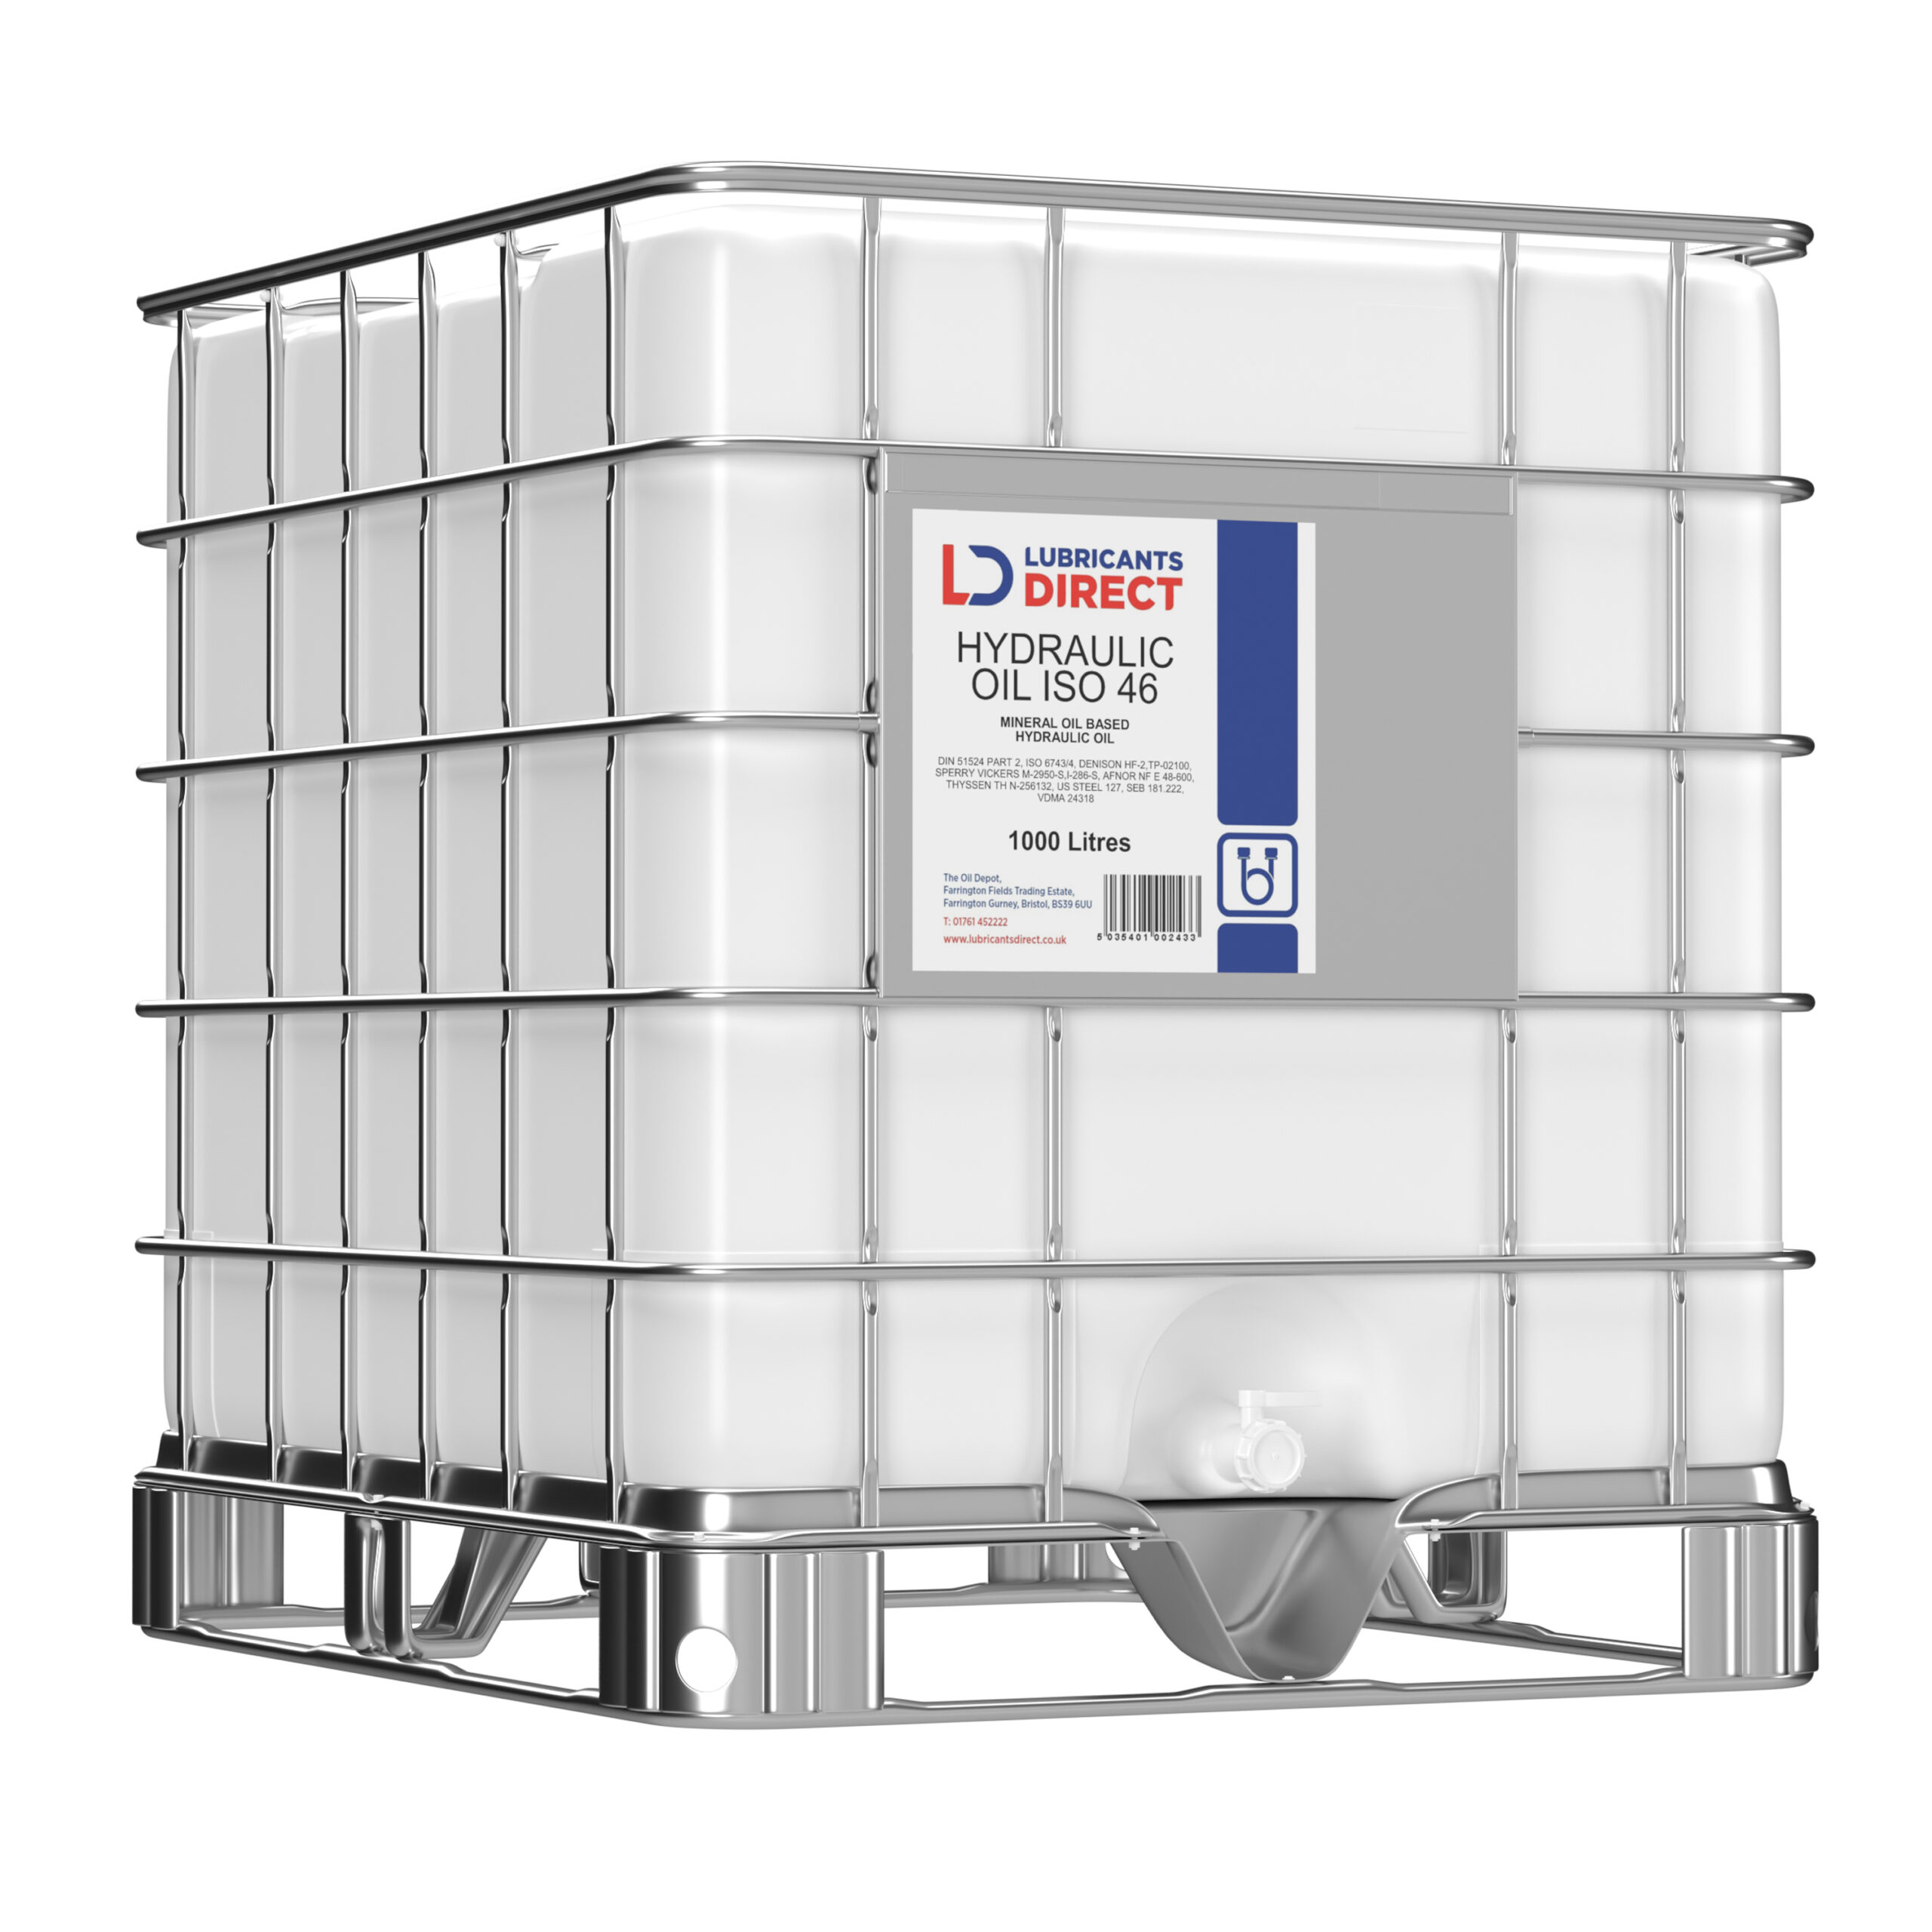 https://commercial.fordfuels.co.uk/wp-content/uploads/sites/10/IBC-HYDRAULIC-OIL-ISO46.png-scaled-350x350.jpg+https://commercial.fordfuels.co.uk/wp-content/uploads/sites/10/IBC-HYDRAULIC-OIL-ISO46.png-scaled-700x700.jpg